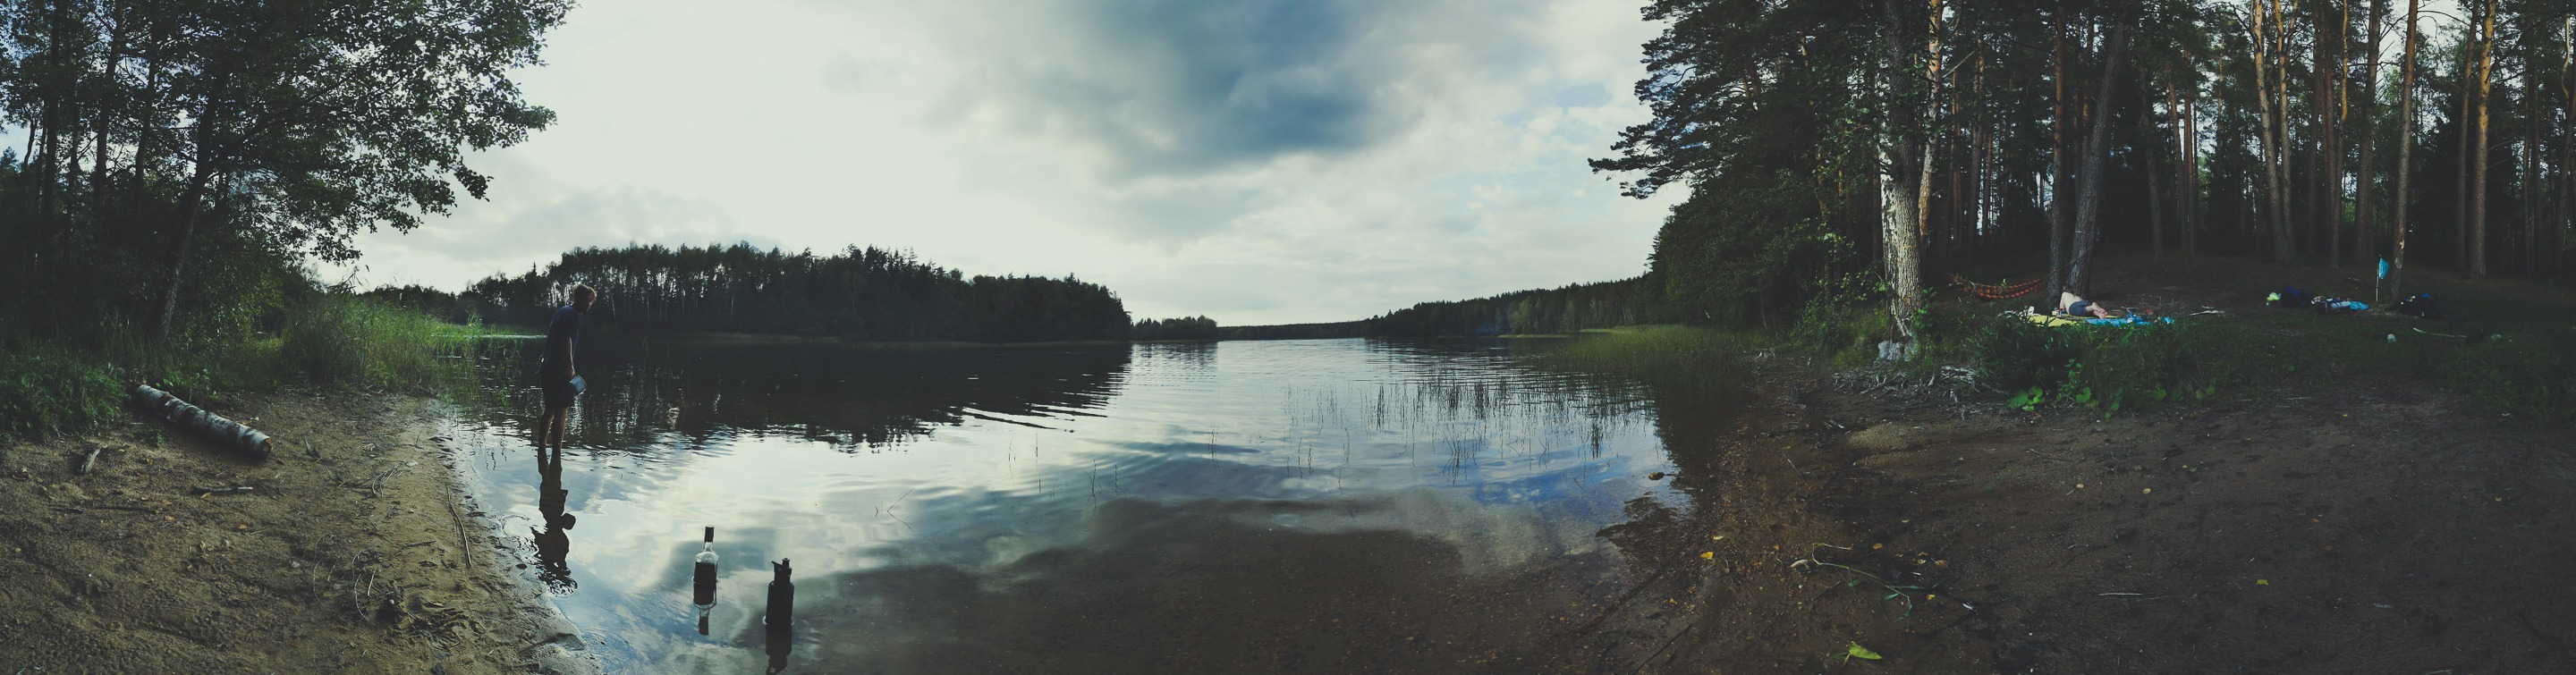 Camping near Black Lakajai Lake in Labanoras Regional Park, Lithuania. Photo Alis Monte [CC BY-SA 4.0], via Connecting the Dots